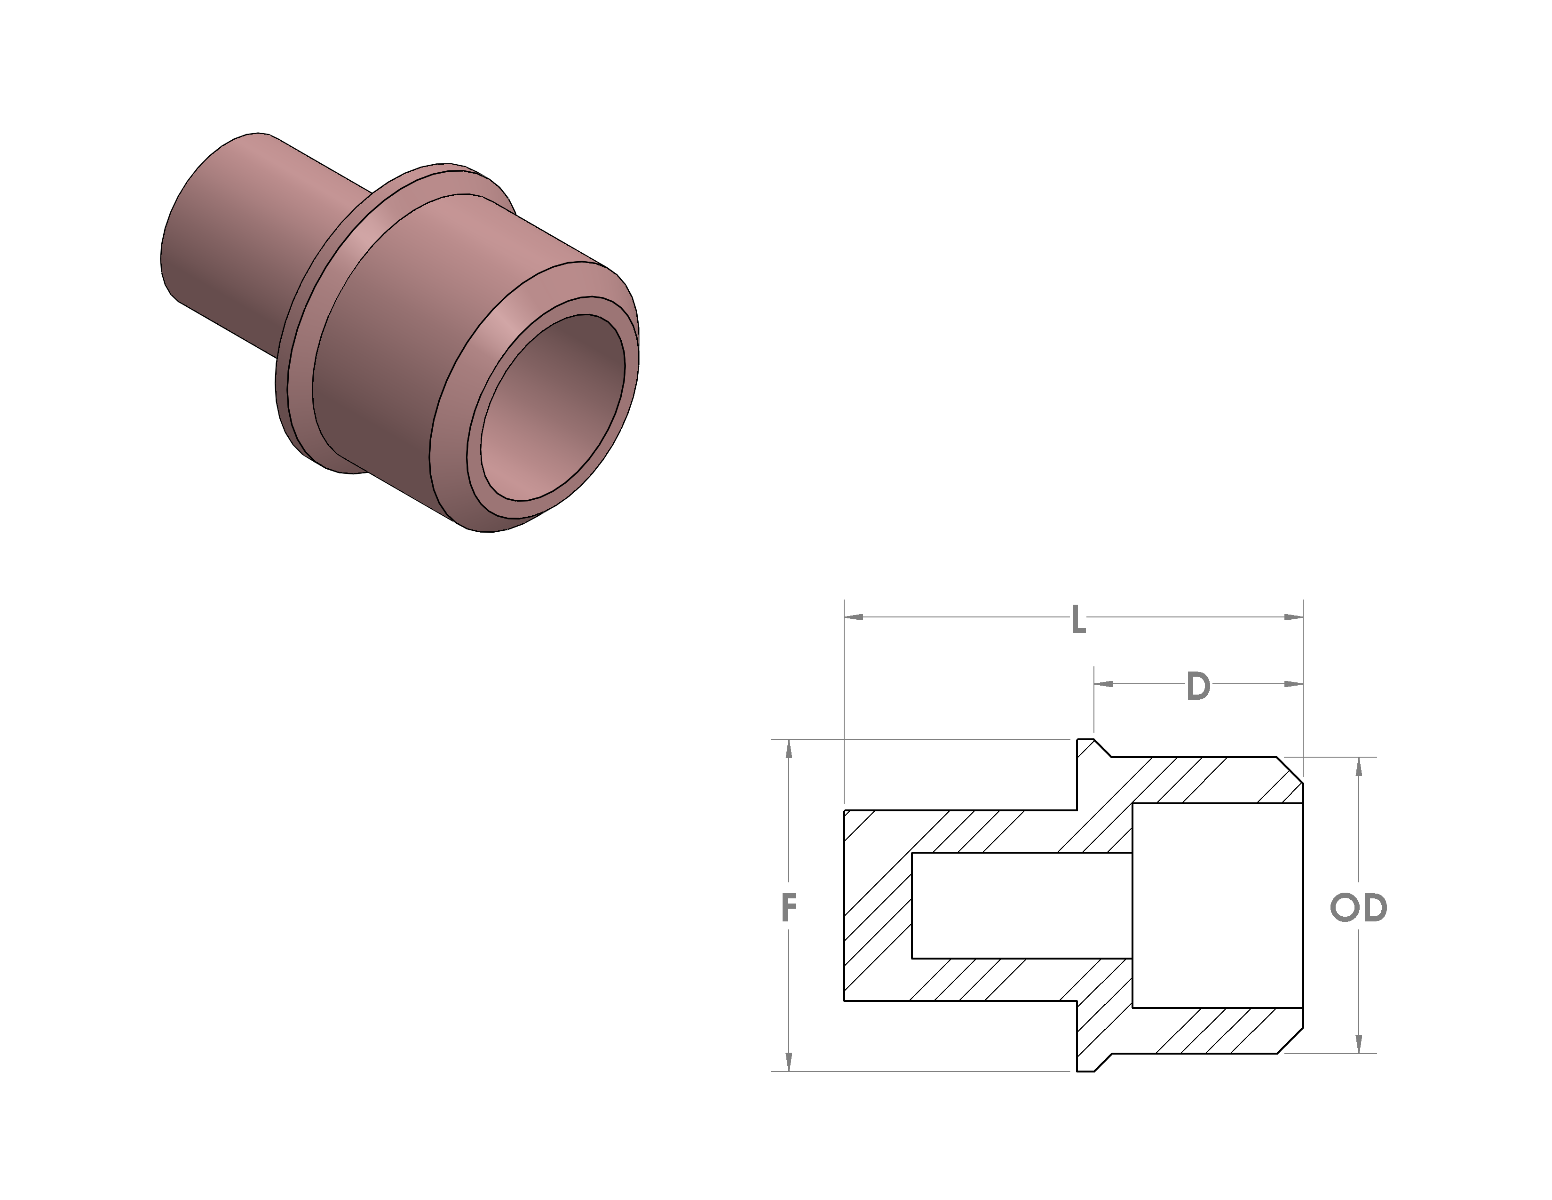 Silicone Thread Mask CAD Drawing